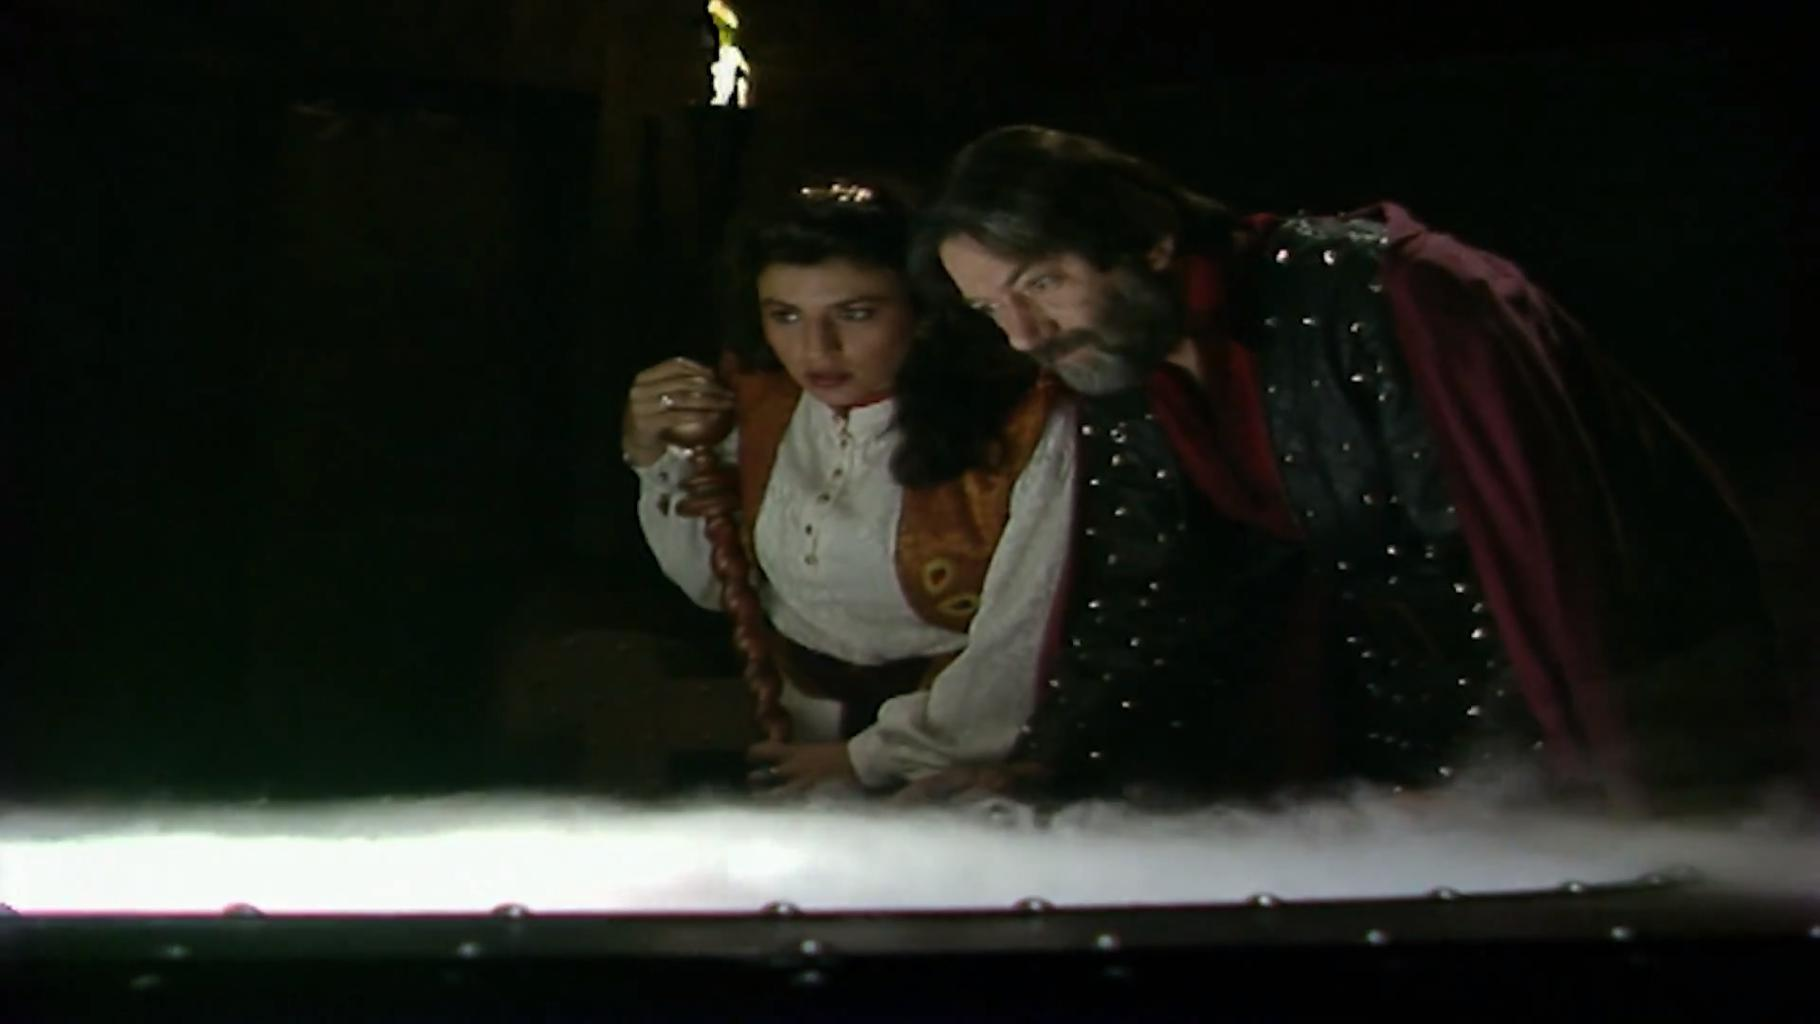 Majida and Treguard looking into pool, Series 8 Episode 1